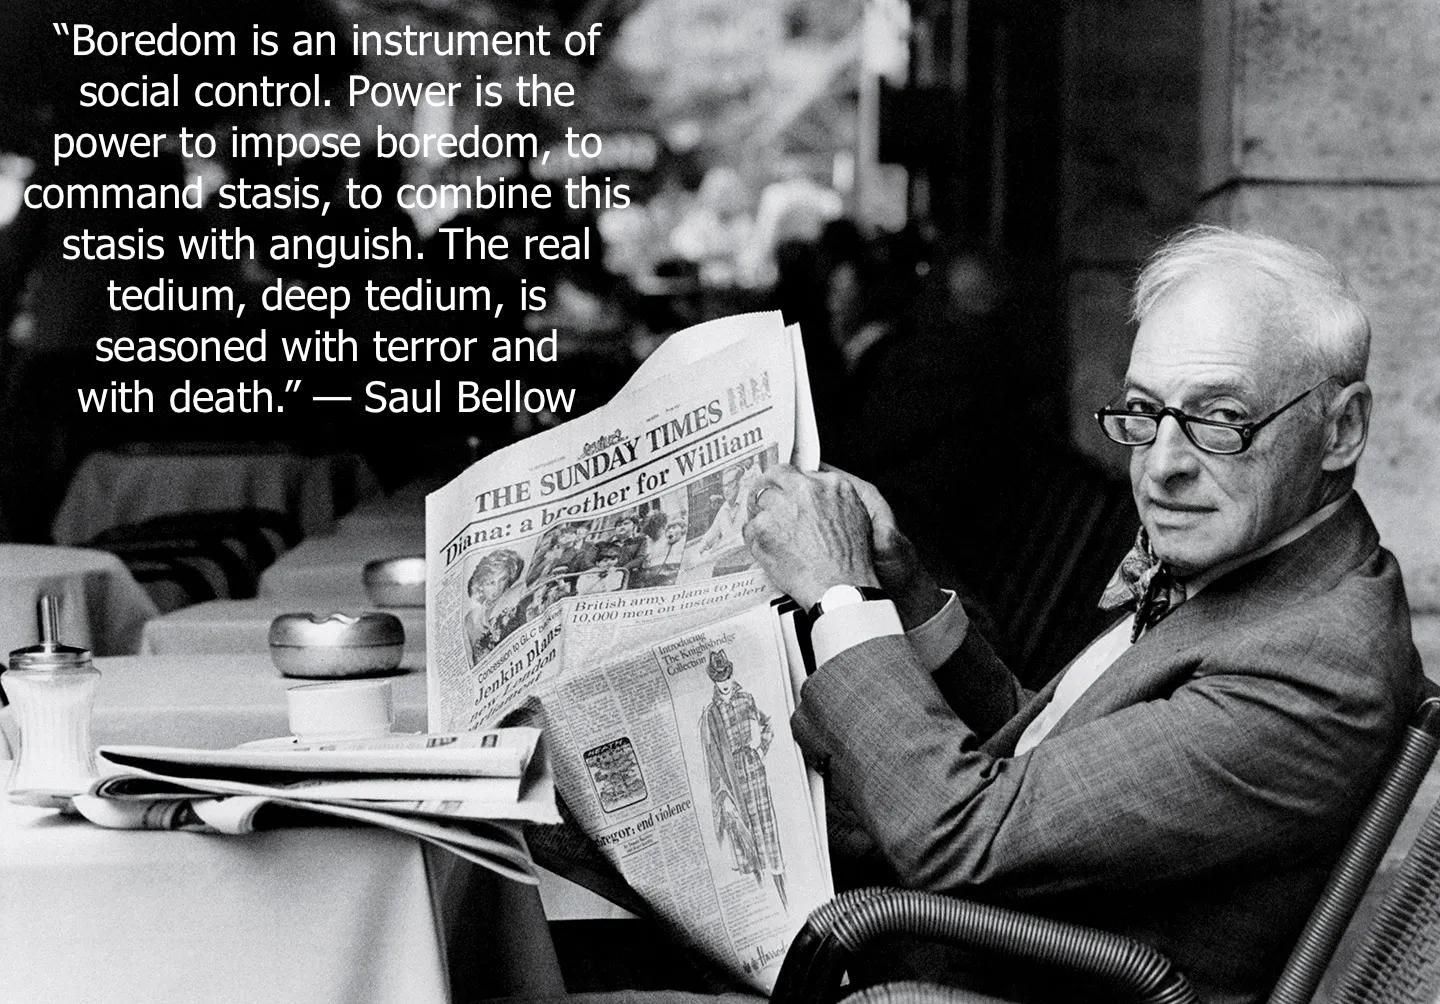 """Boredom is an instrument of social control."" –Saul Bellow [1440×1004] (longer excerpt in comments)"